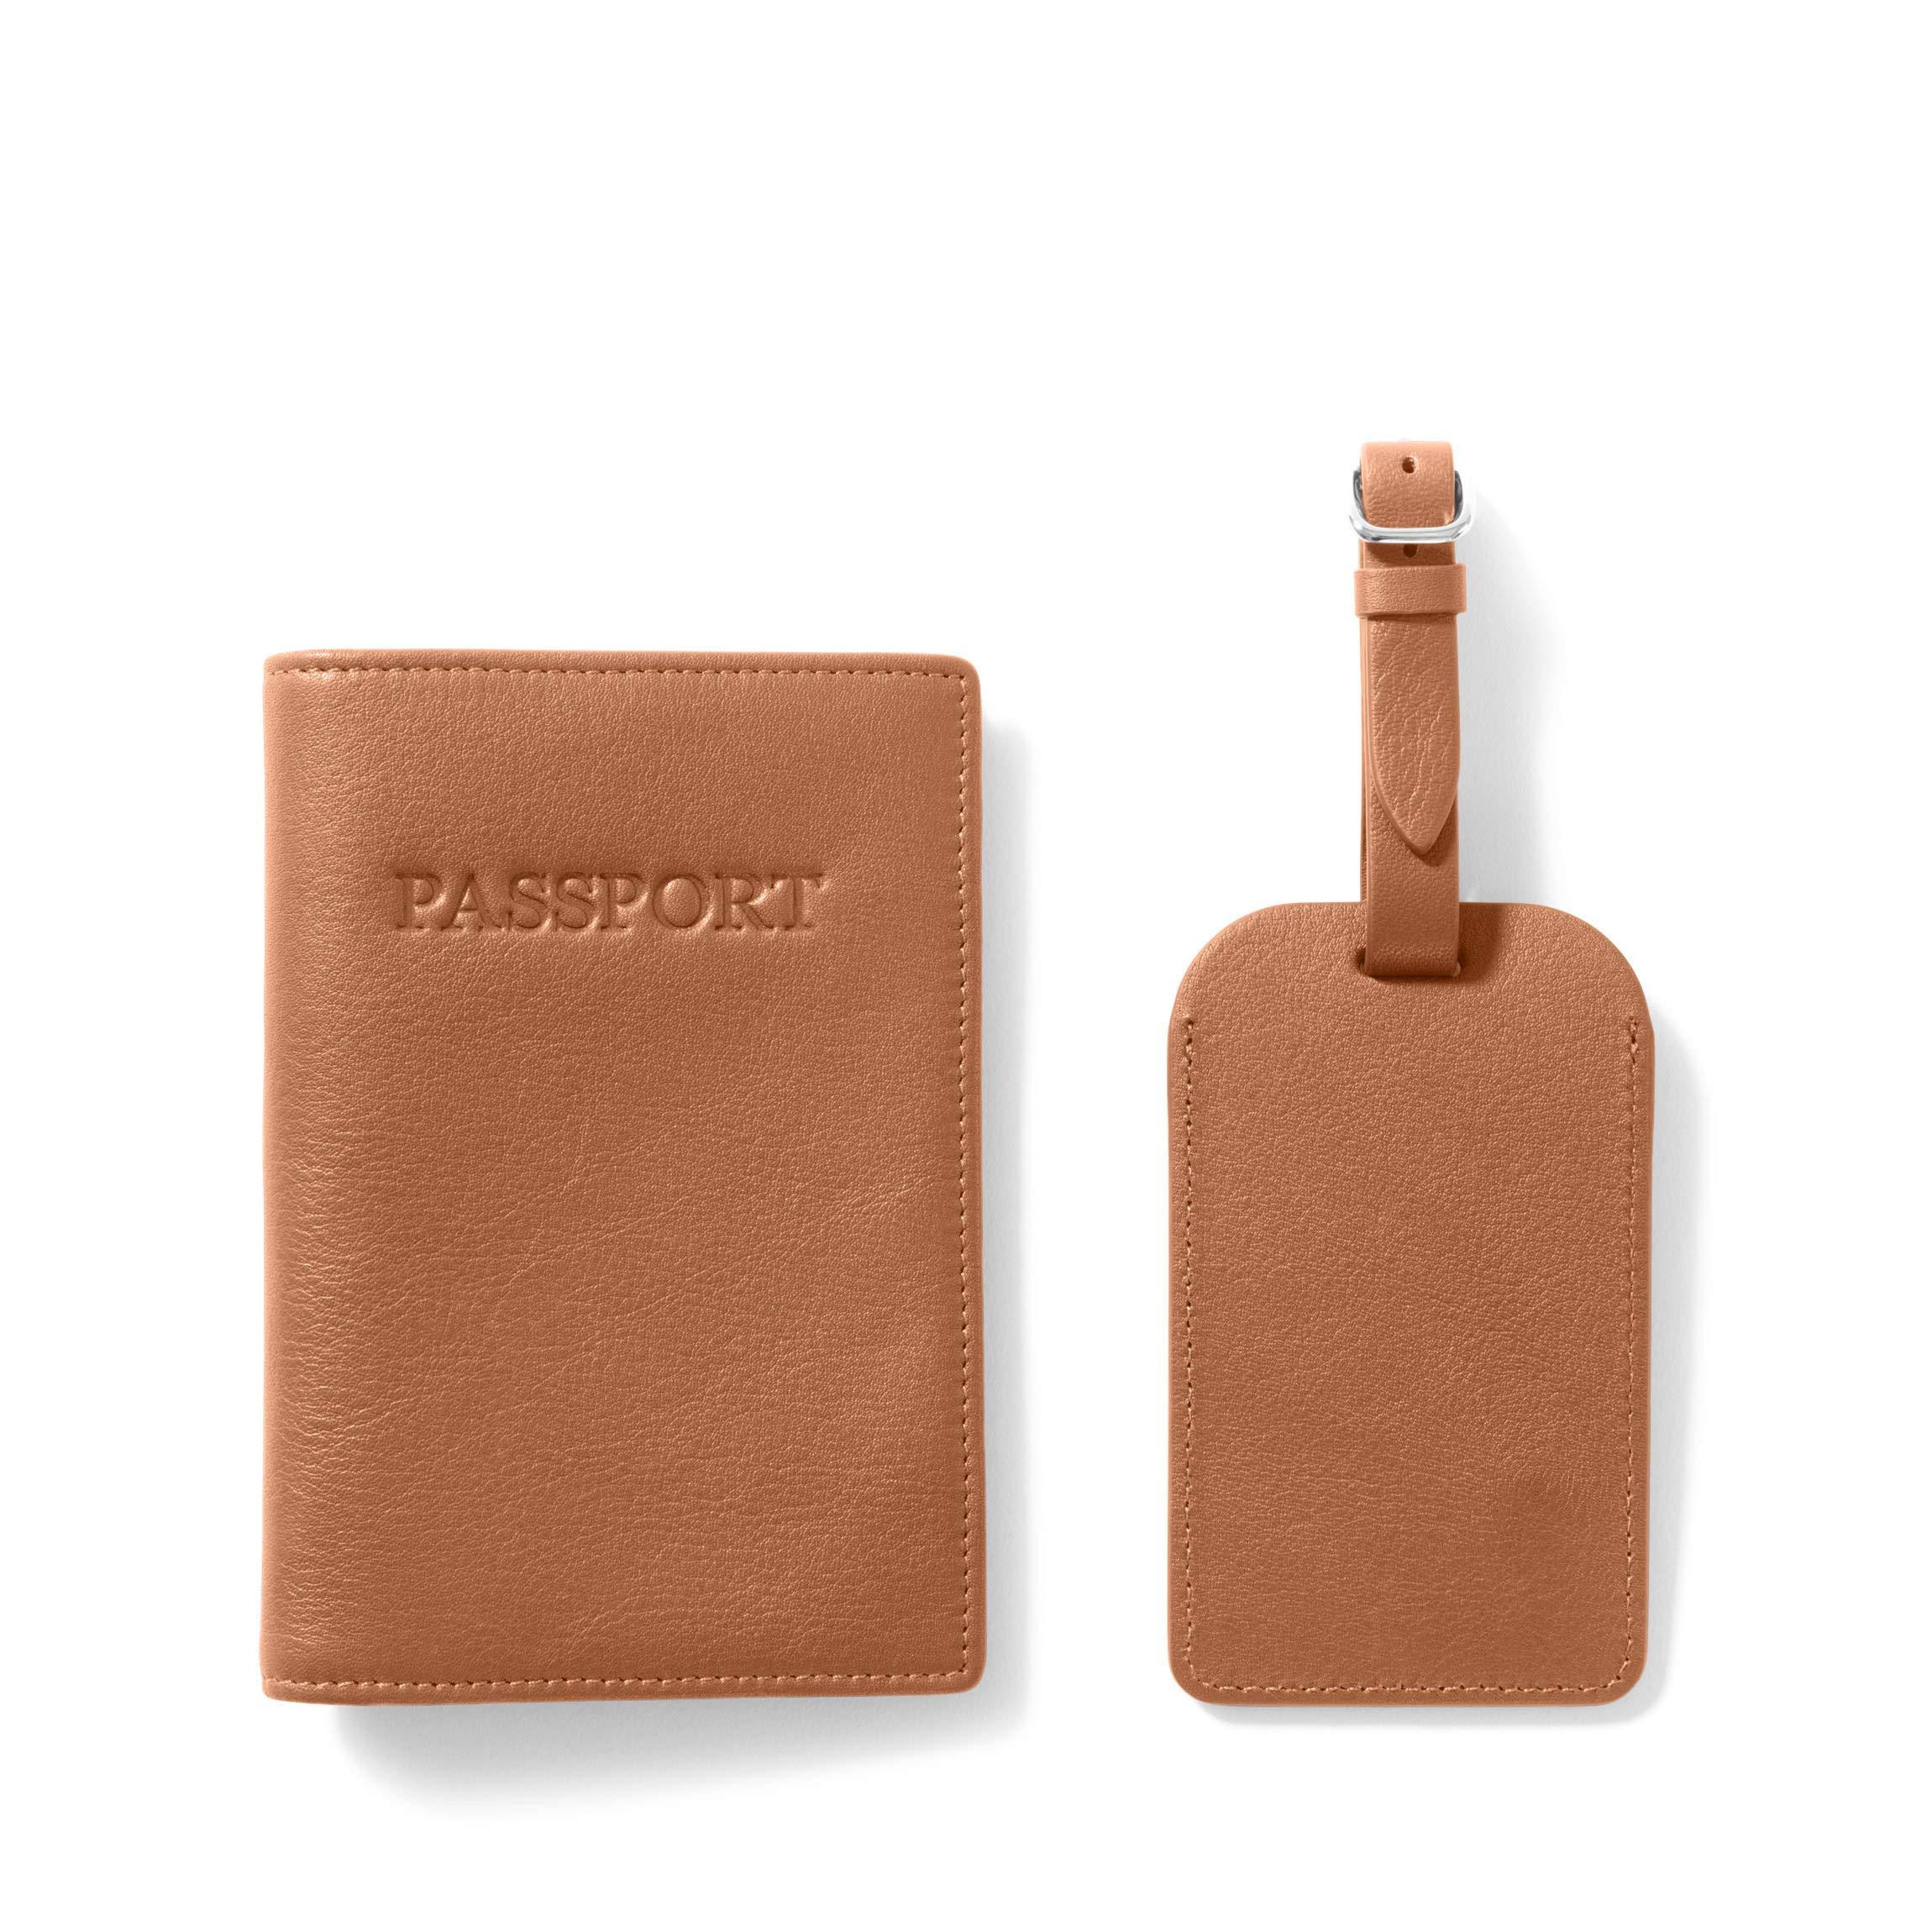 Passport Cover + Luggage Tag - Full Grain Leather - Cognac (brown)